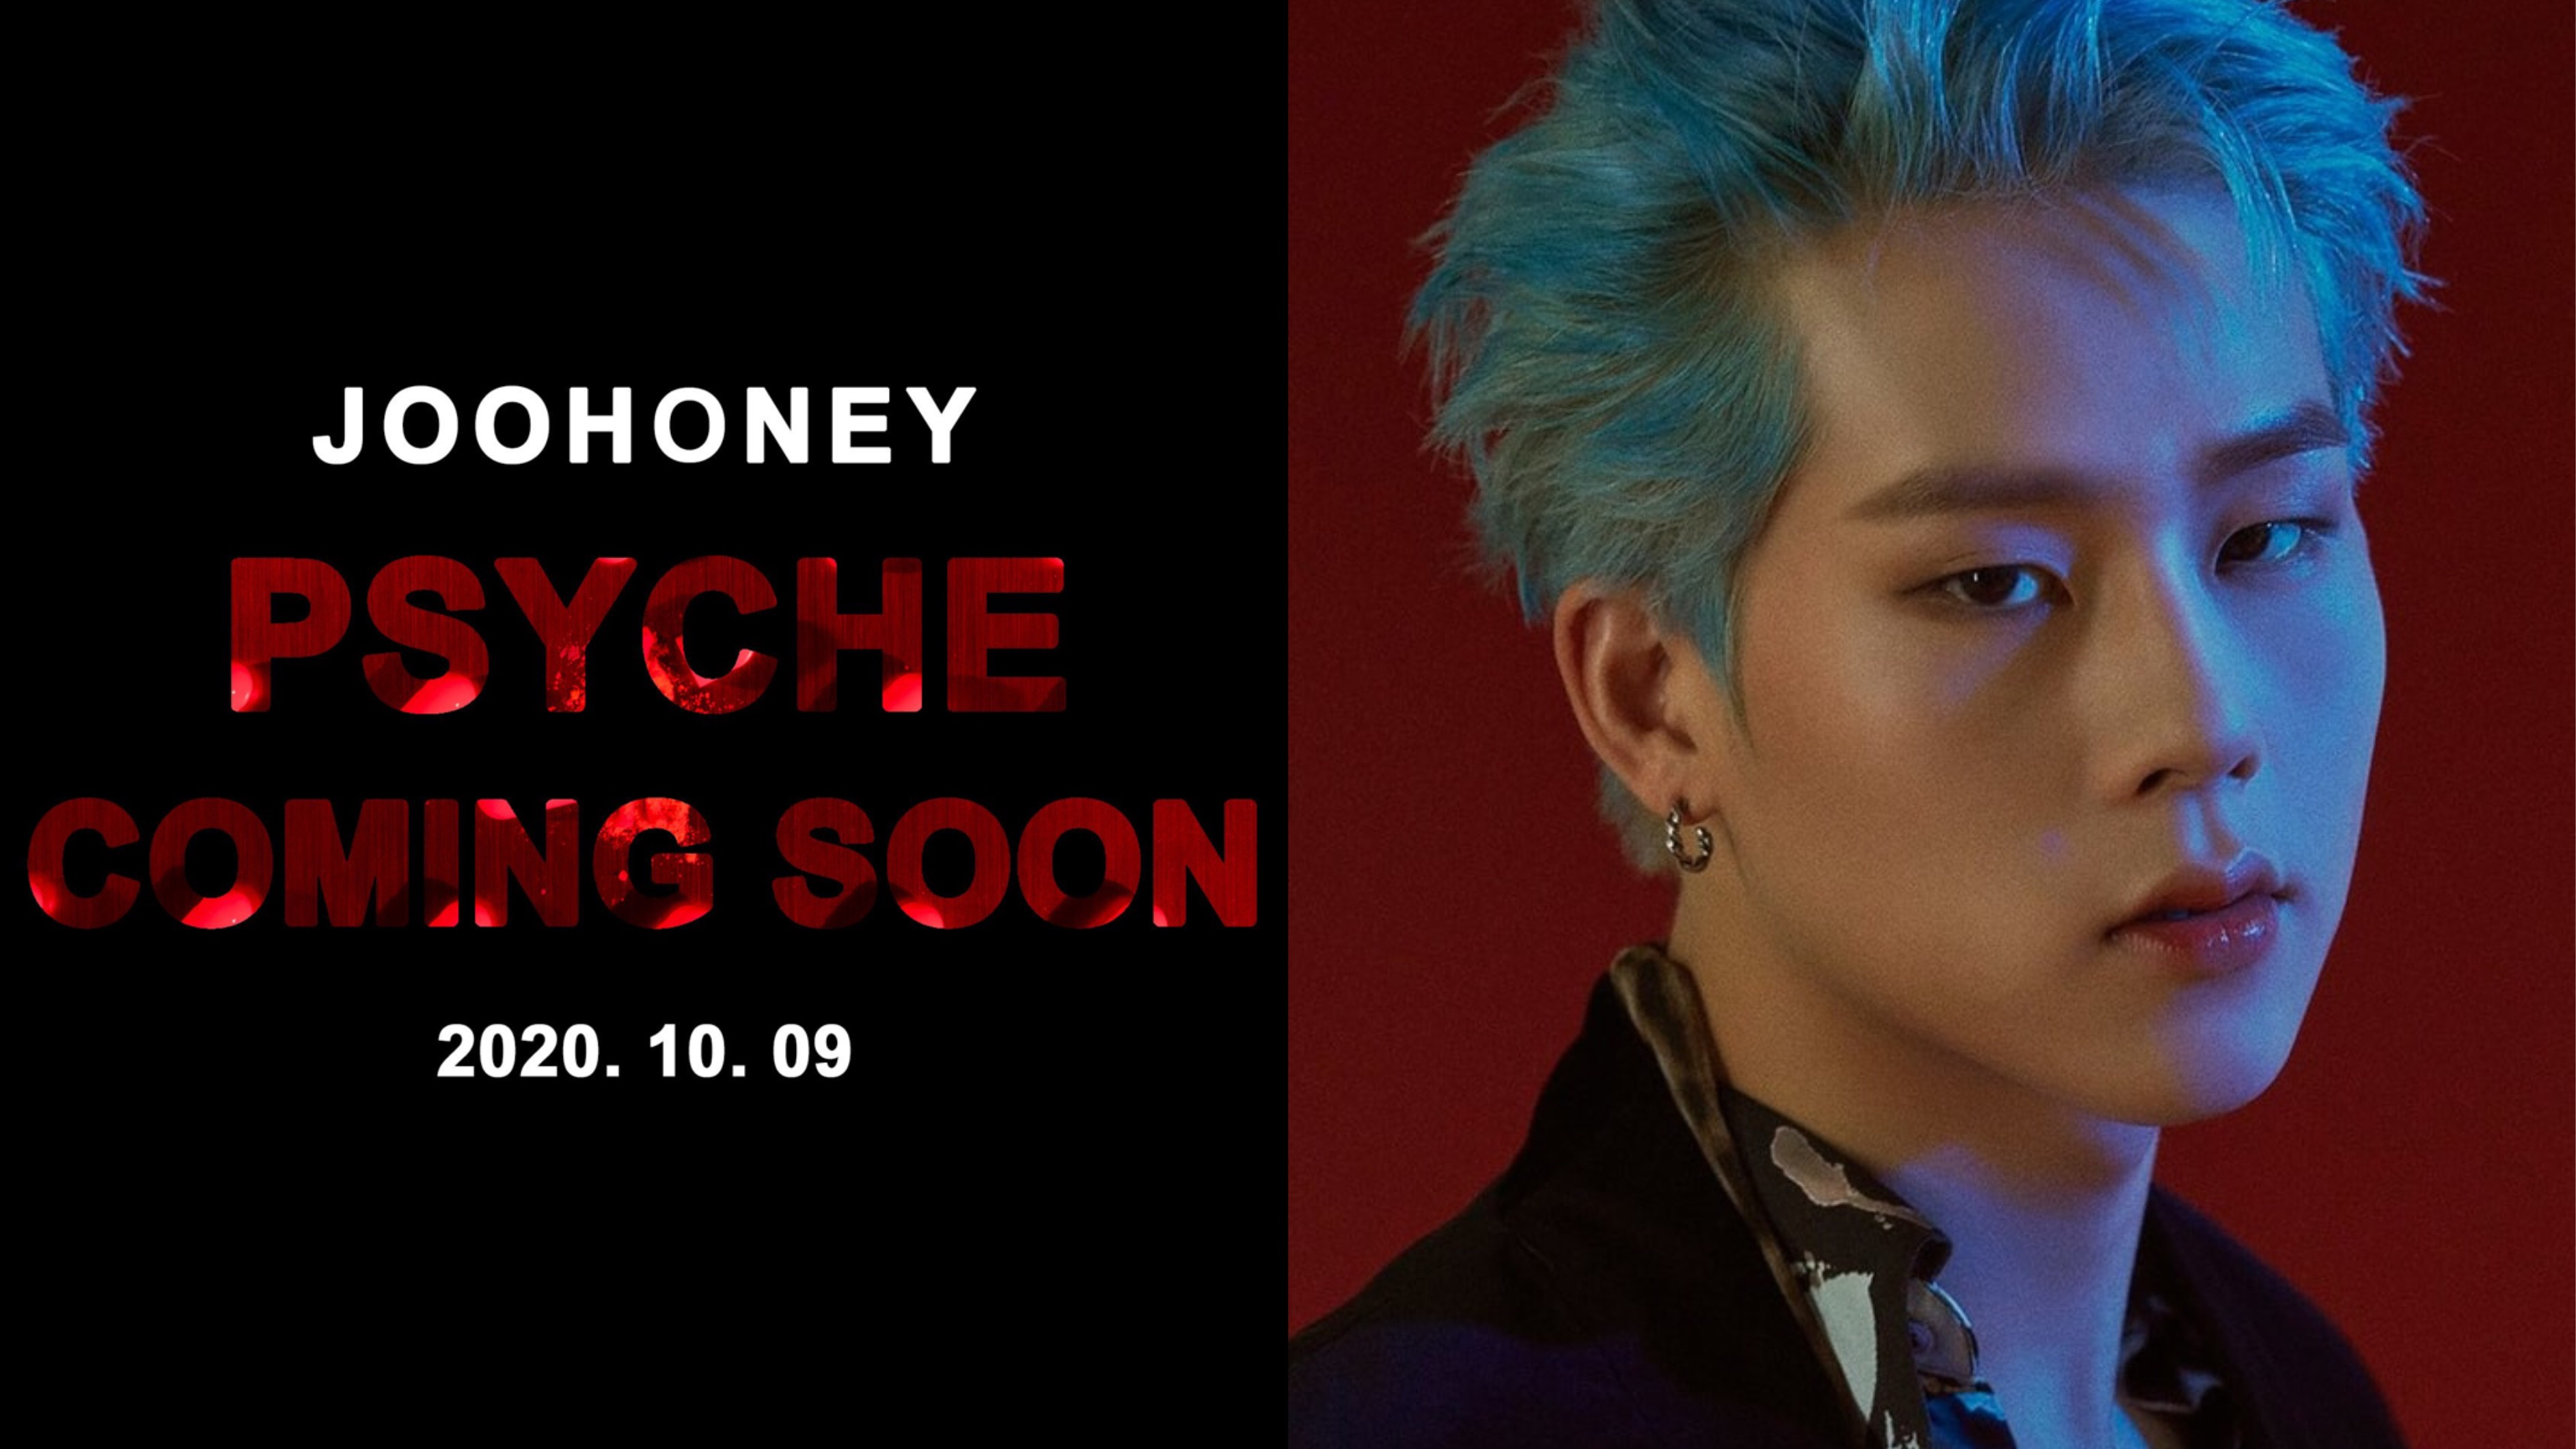 """MONSTA X's Joohoney Gets Ready To Release His Much Awaited Mixtape """"Psyche"""""""